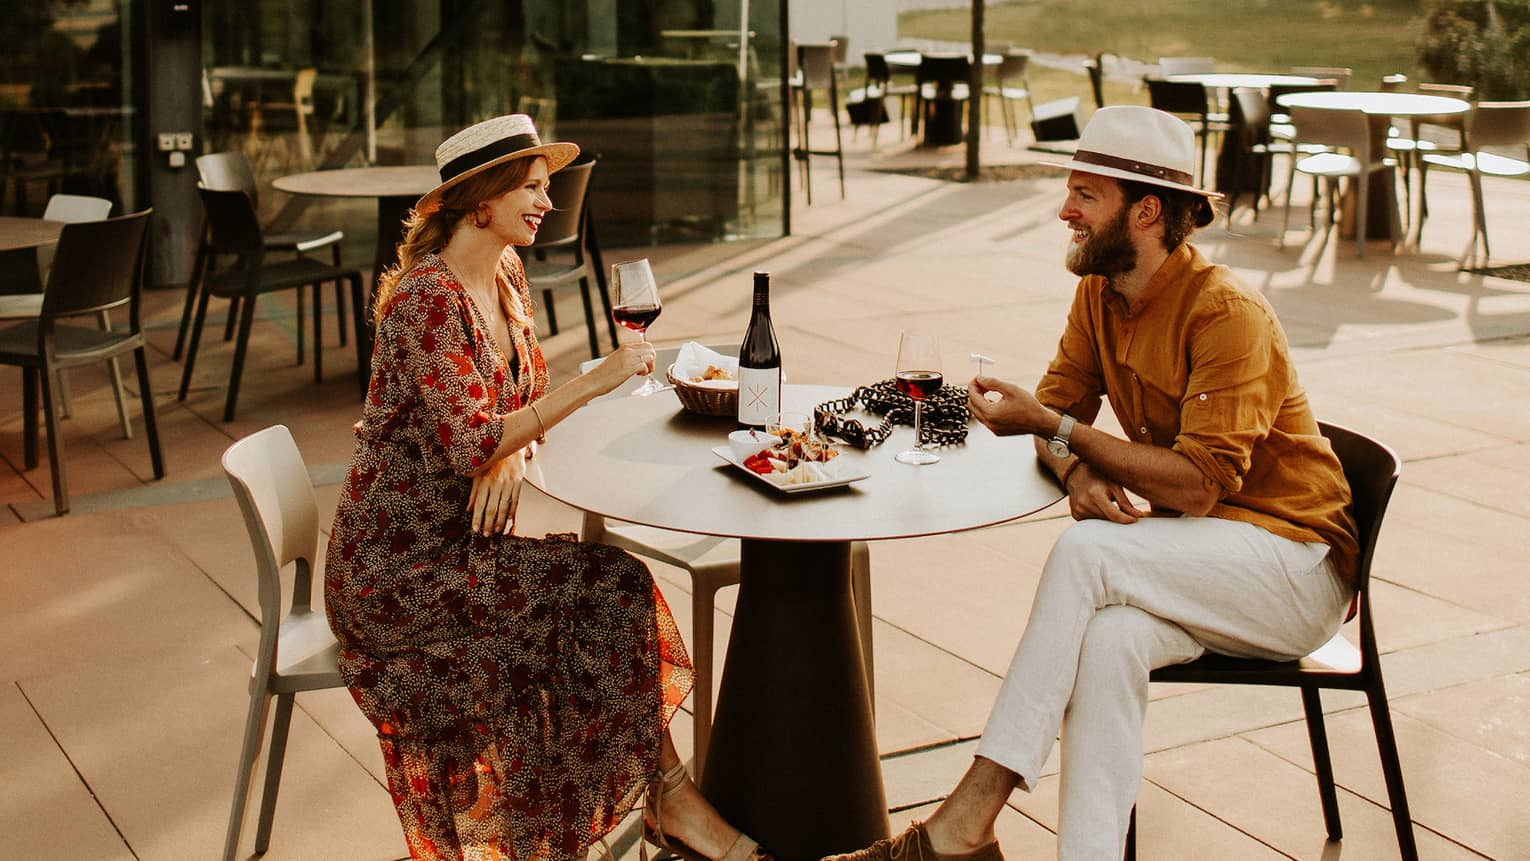 Couple wearing hats sit at outdoor table with plate of food, drinking red wine